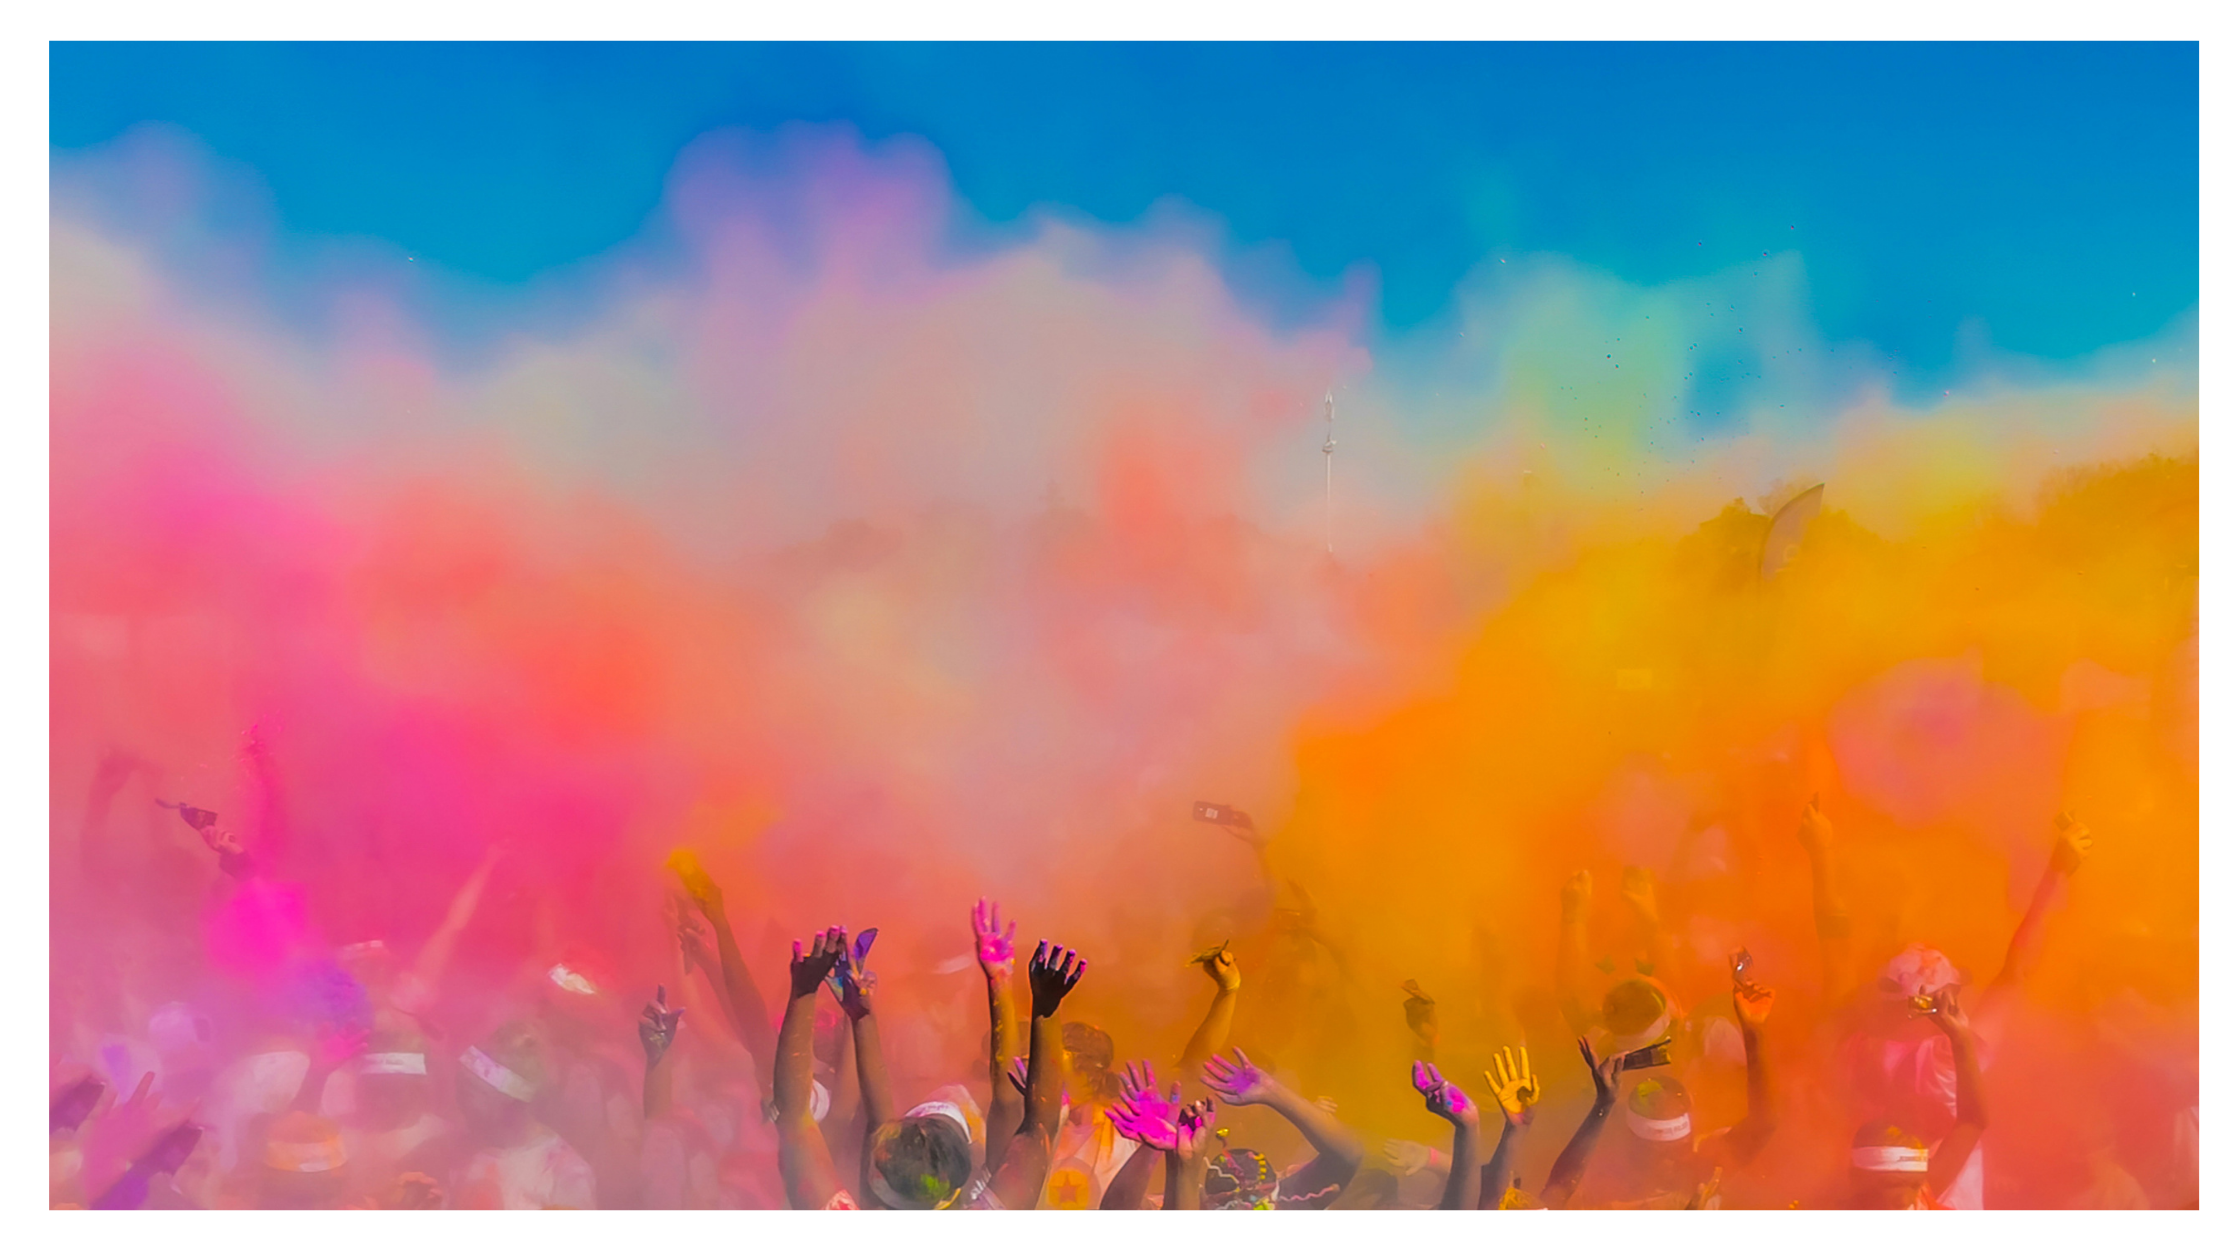 people's hands upraised in front of colored powder dust during holi festival in india